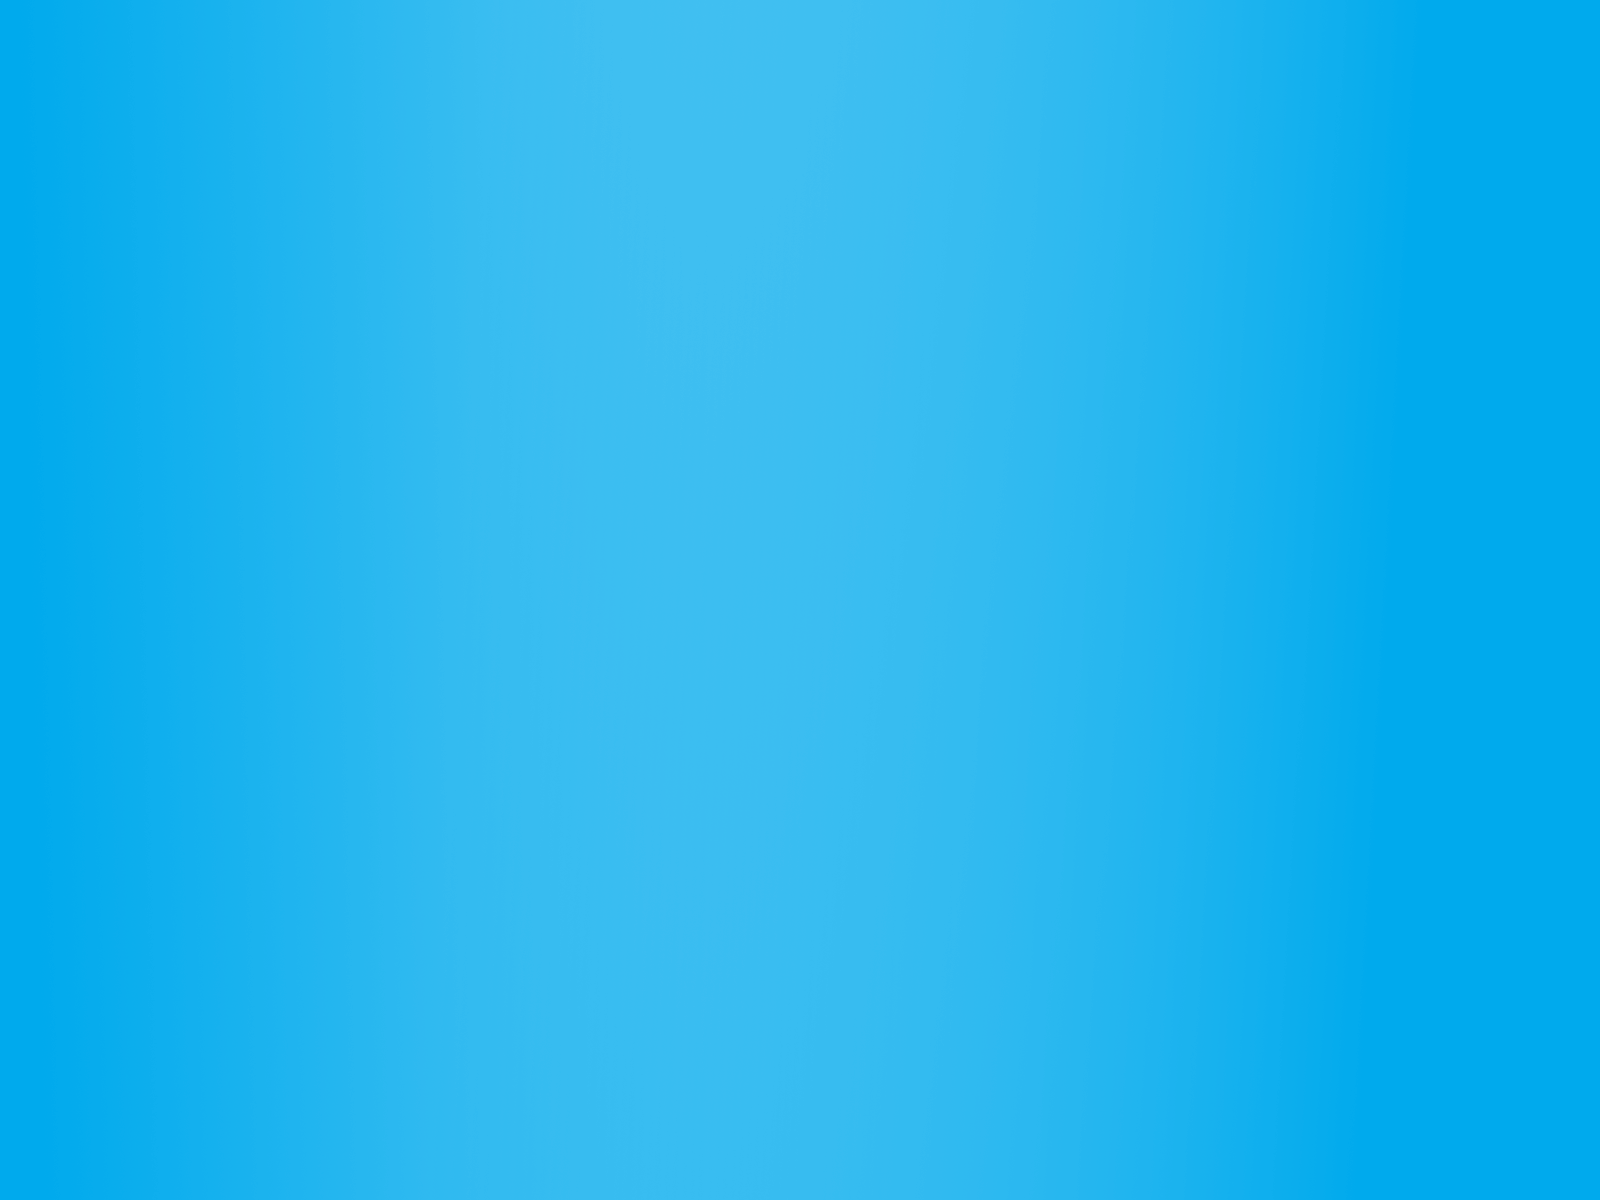 Blue Gradient Background 1600x1200px by Korgan360 1600x1200